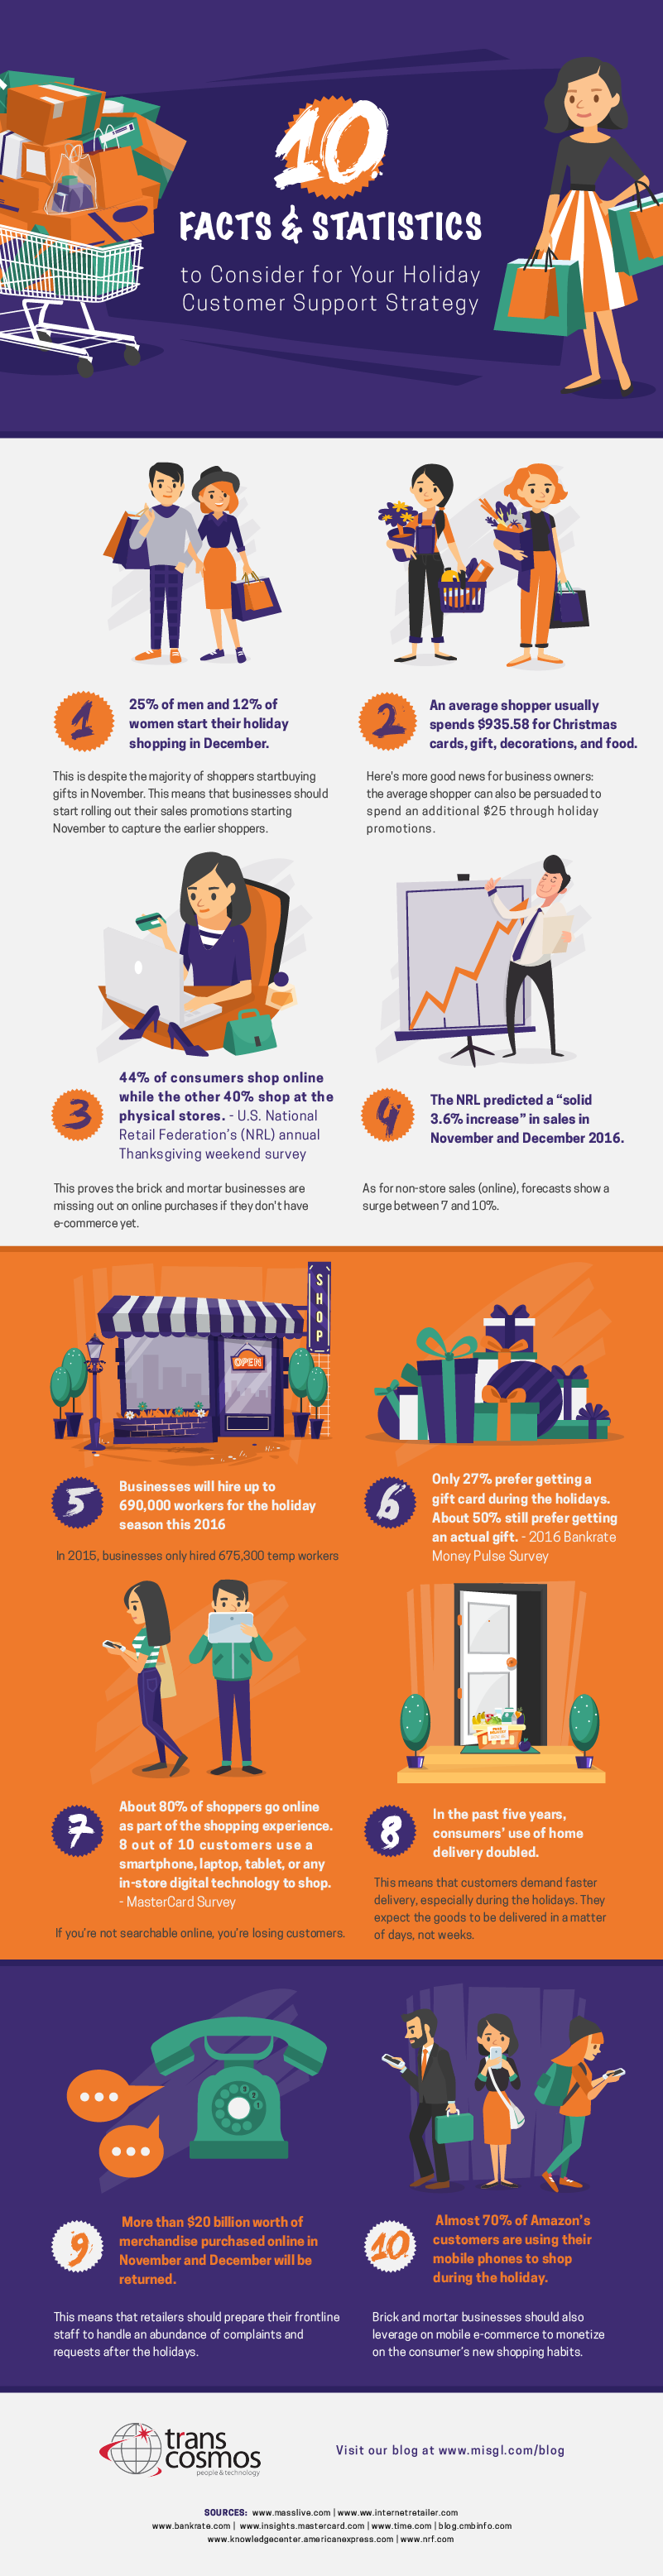 merlin-holiday-customer-support-strategy-infographic-1